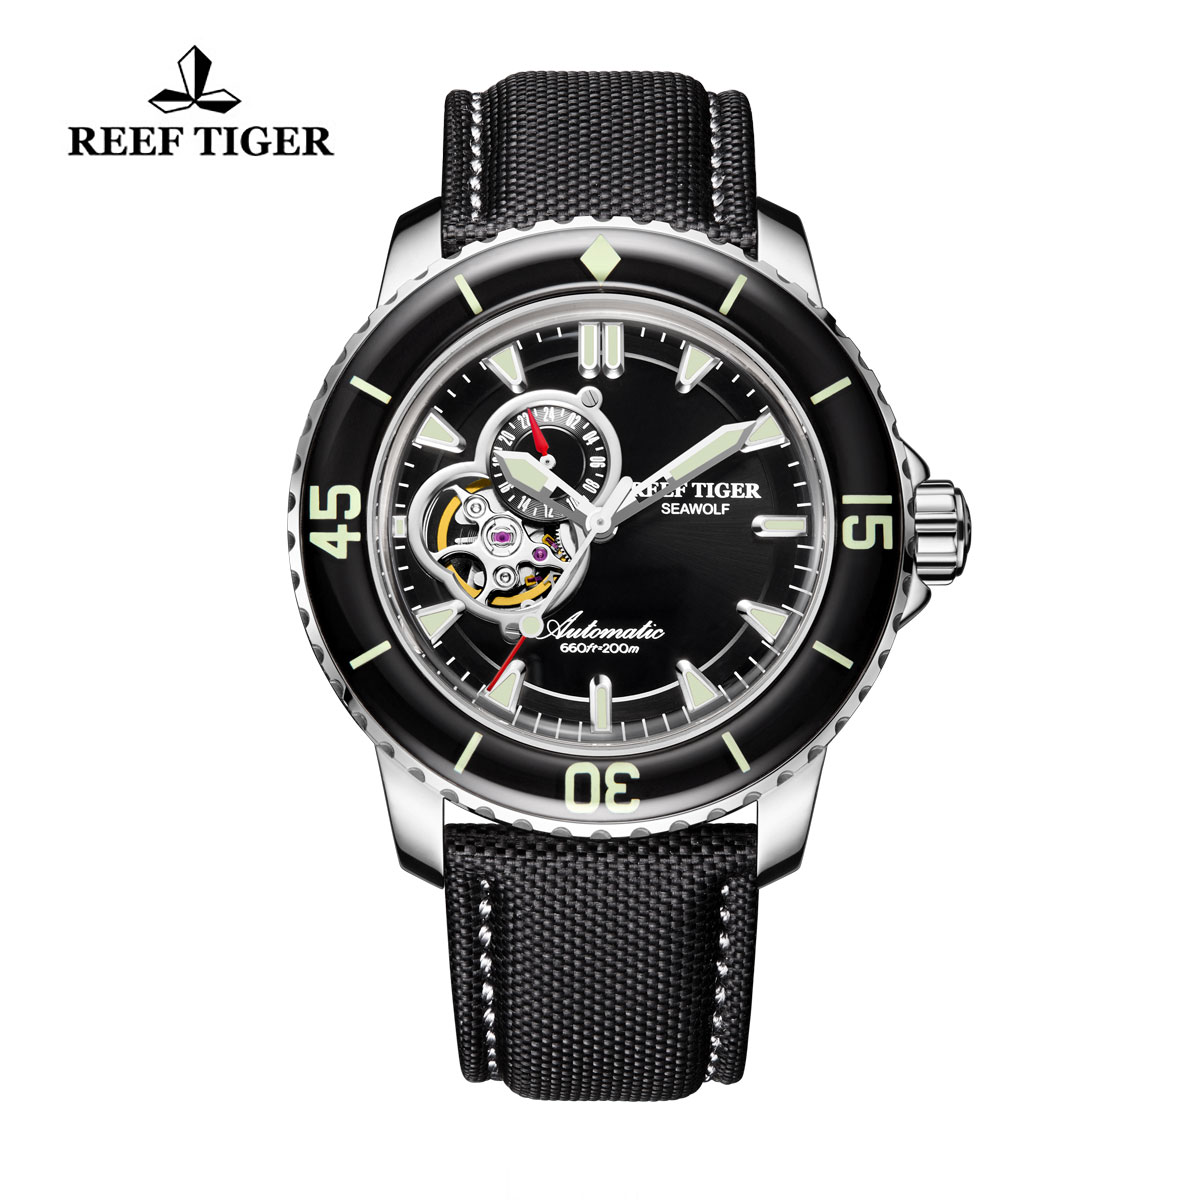 Reef Tiger Sea Wolf Dress Automatic Watch Steel Black Dial Black Nylon/Leather Strap RGA3039-YBB